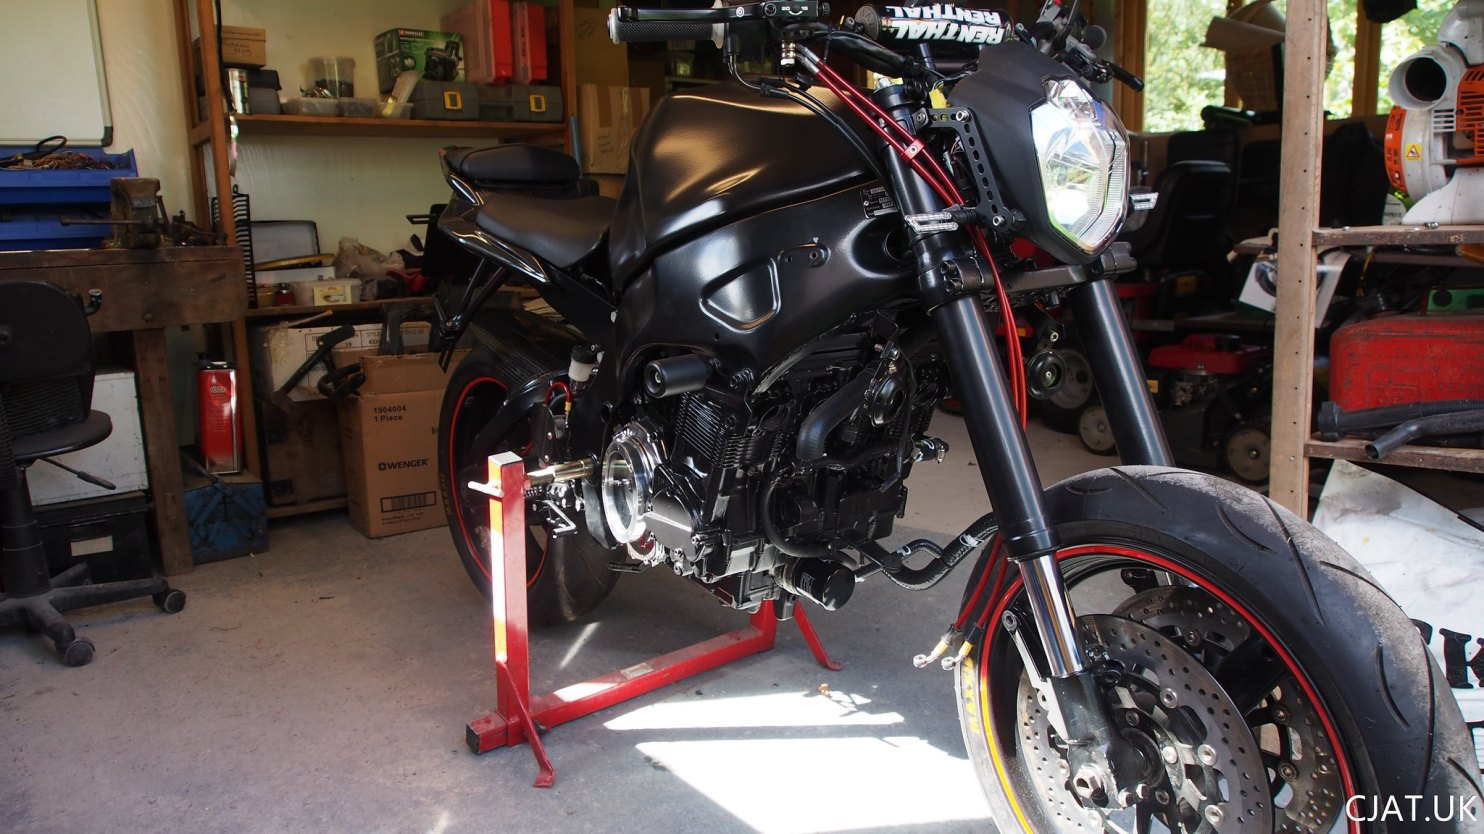 suzuki rf900 braided brake lines and new headlight with USD forks from a gsxr1100